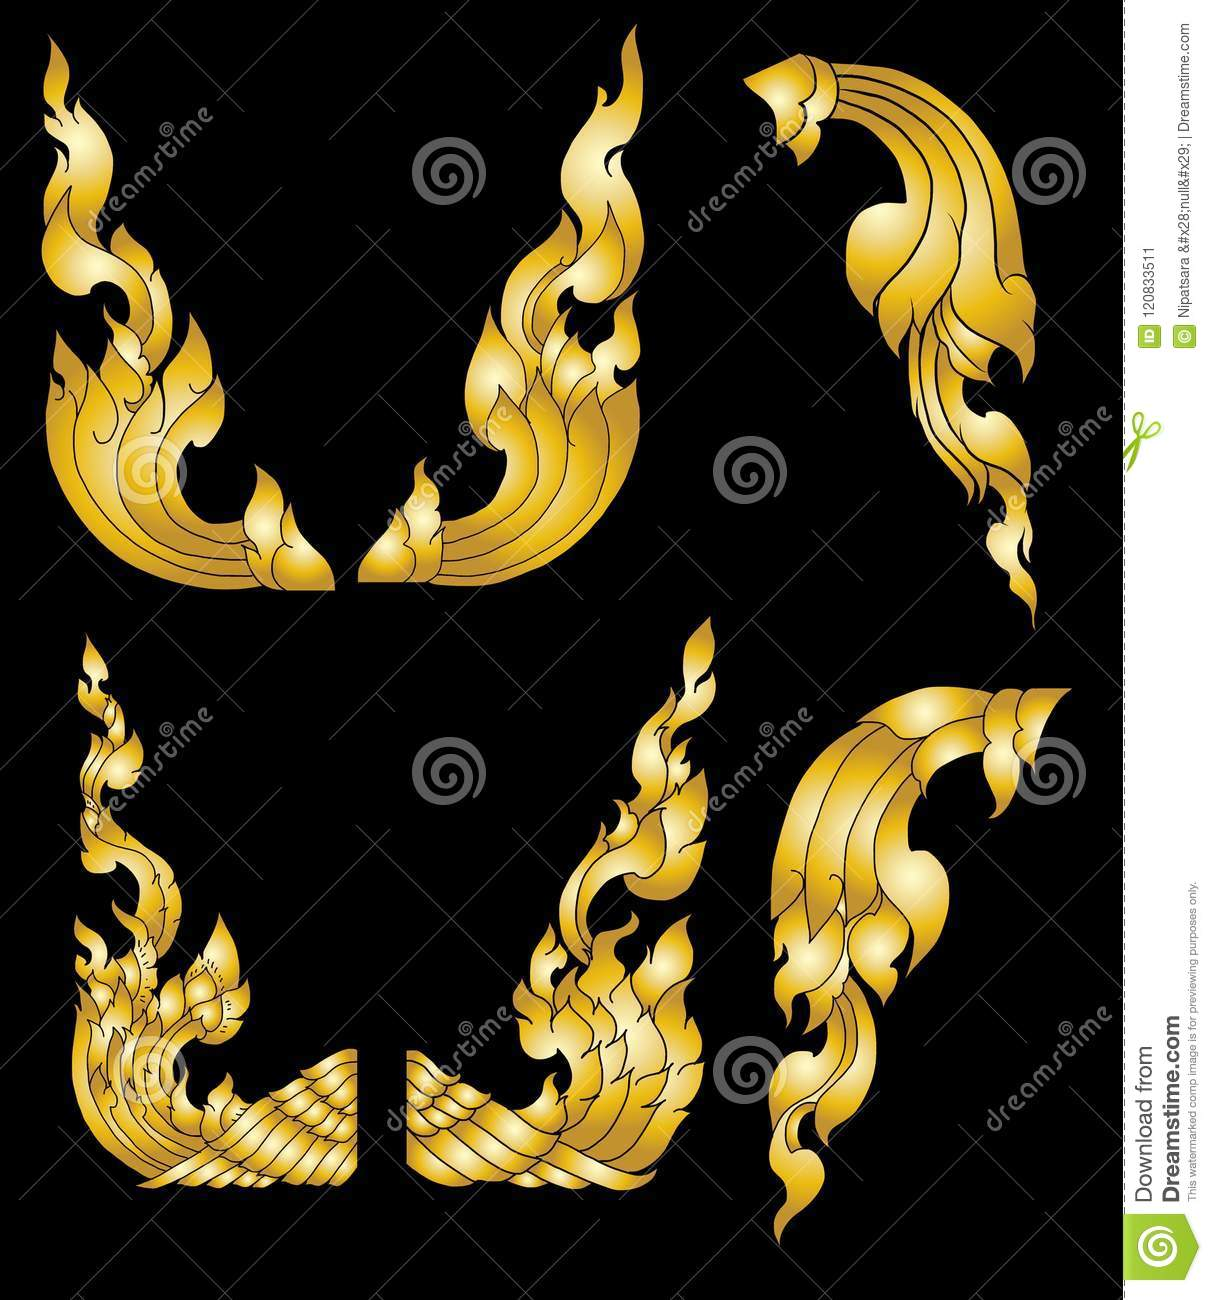 7761a50045865 Illustration: Line Thai Fire Design For Tattoo.japanese Fire For Tattoo  Background.